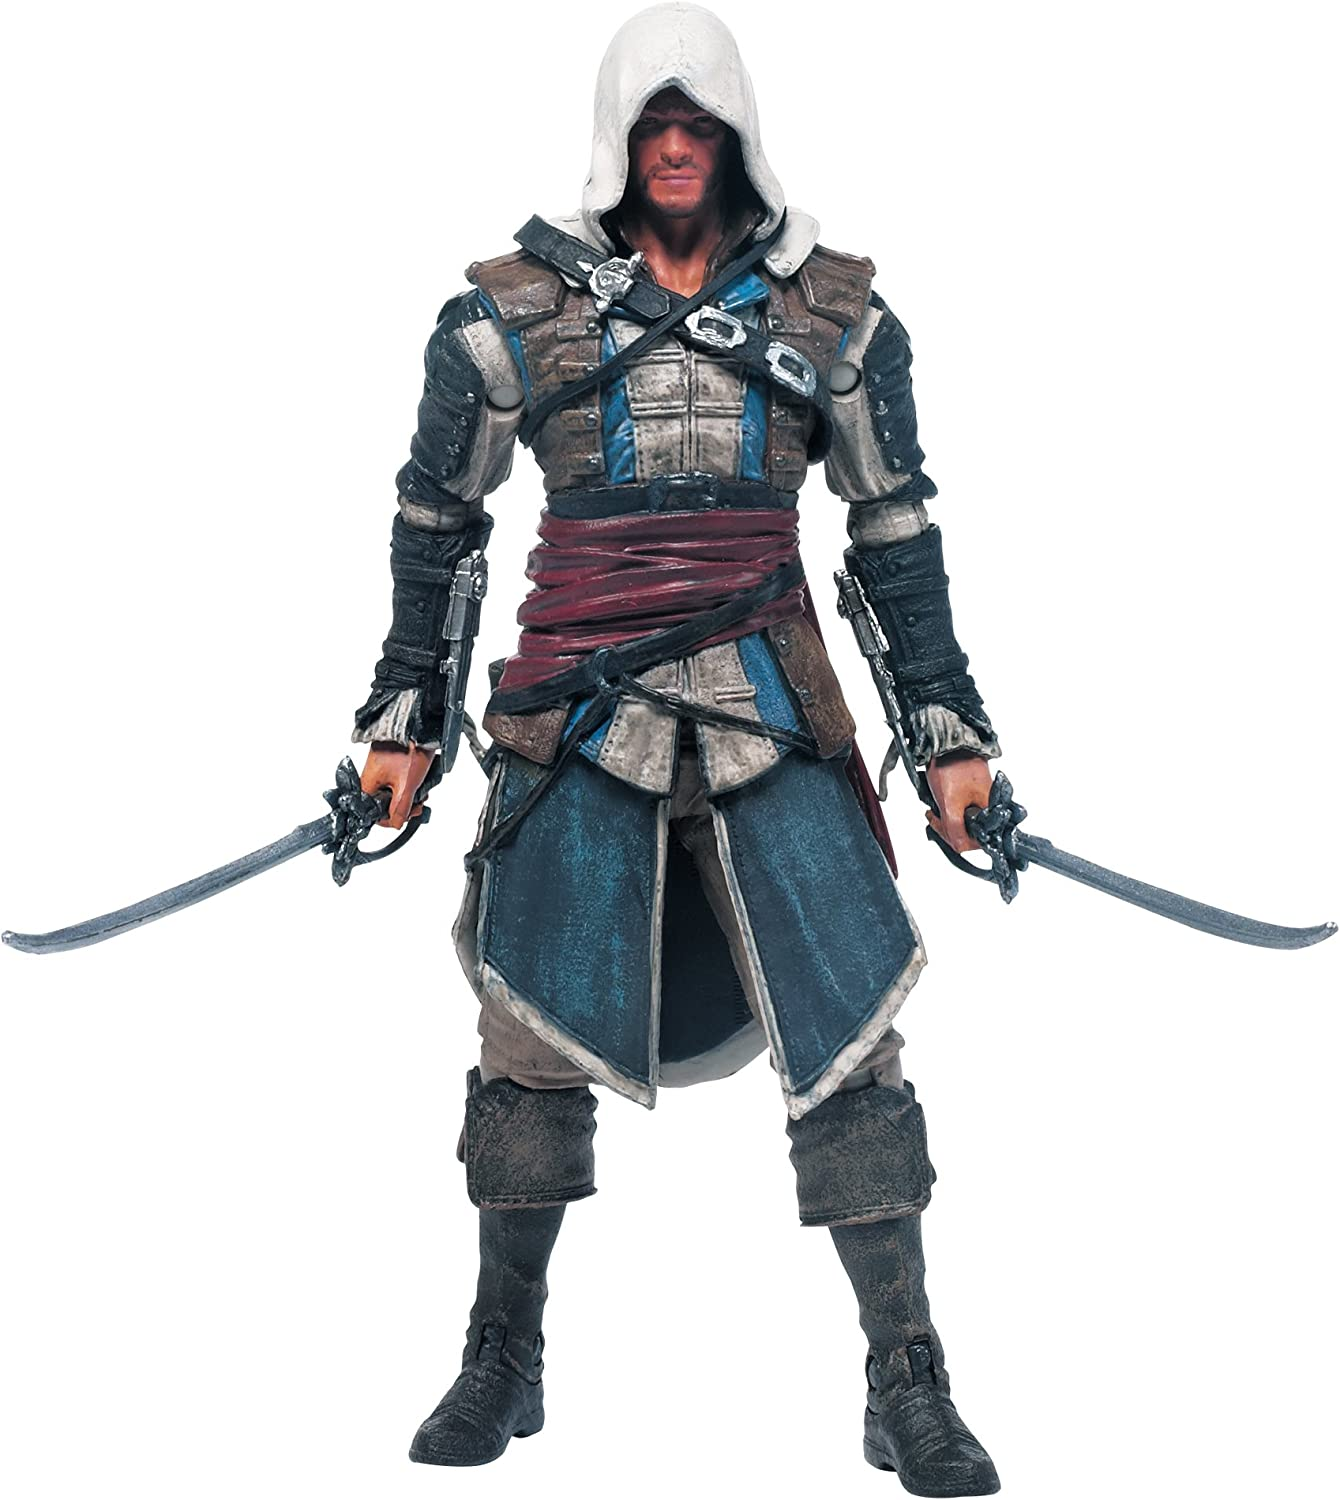 Amazon Com Mcfarlane Toys Assassin S Creed Series 1 Edward Kenway Action Figure Toys Games